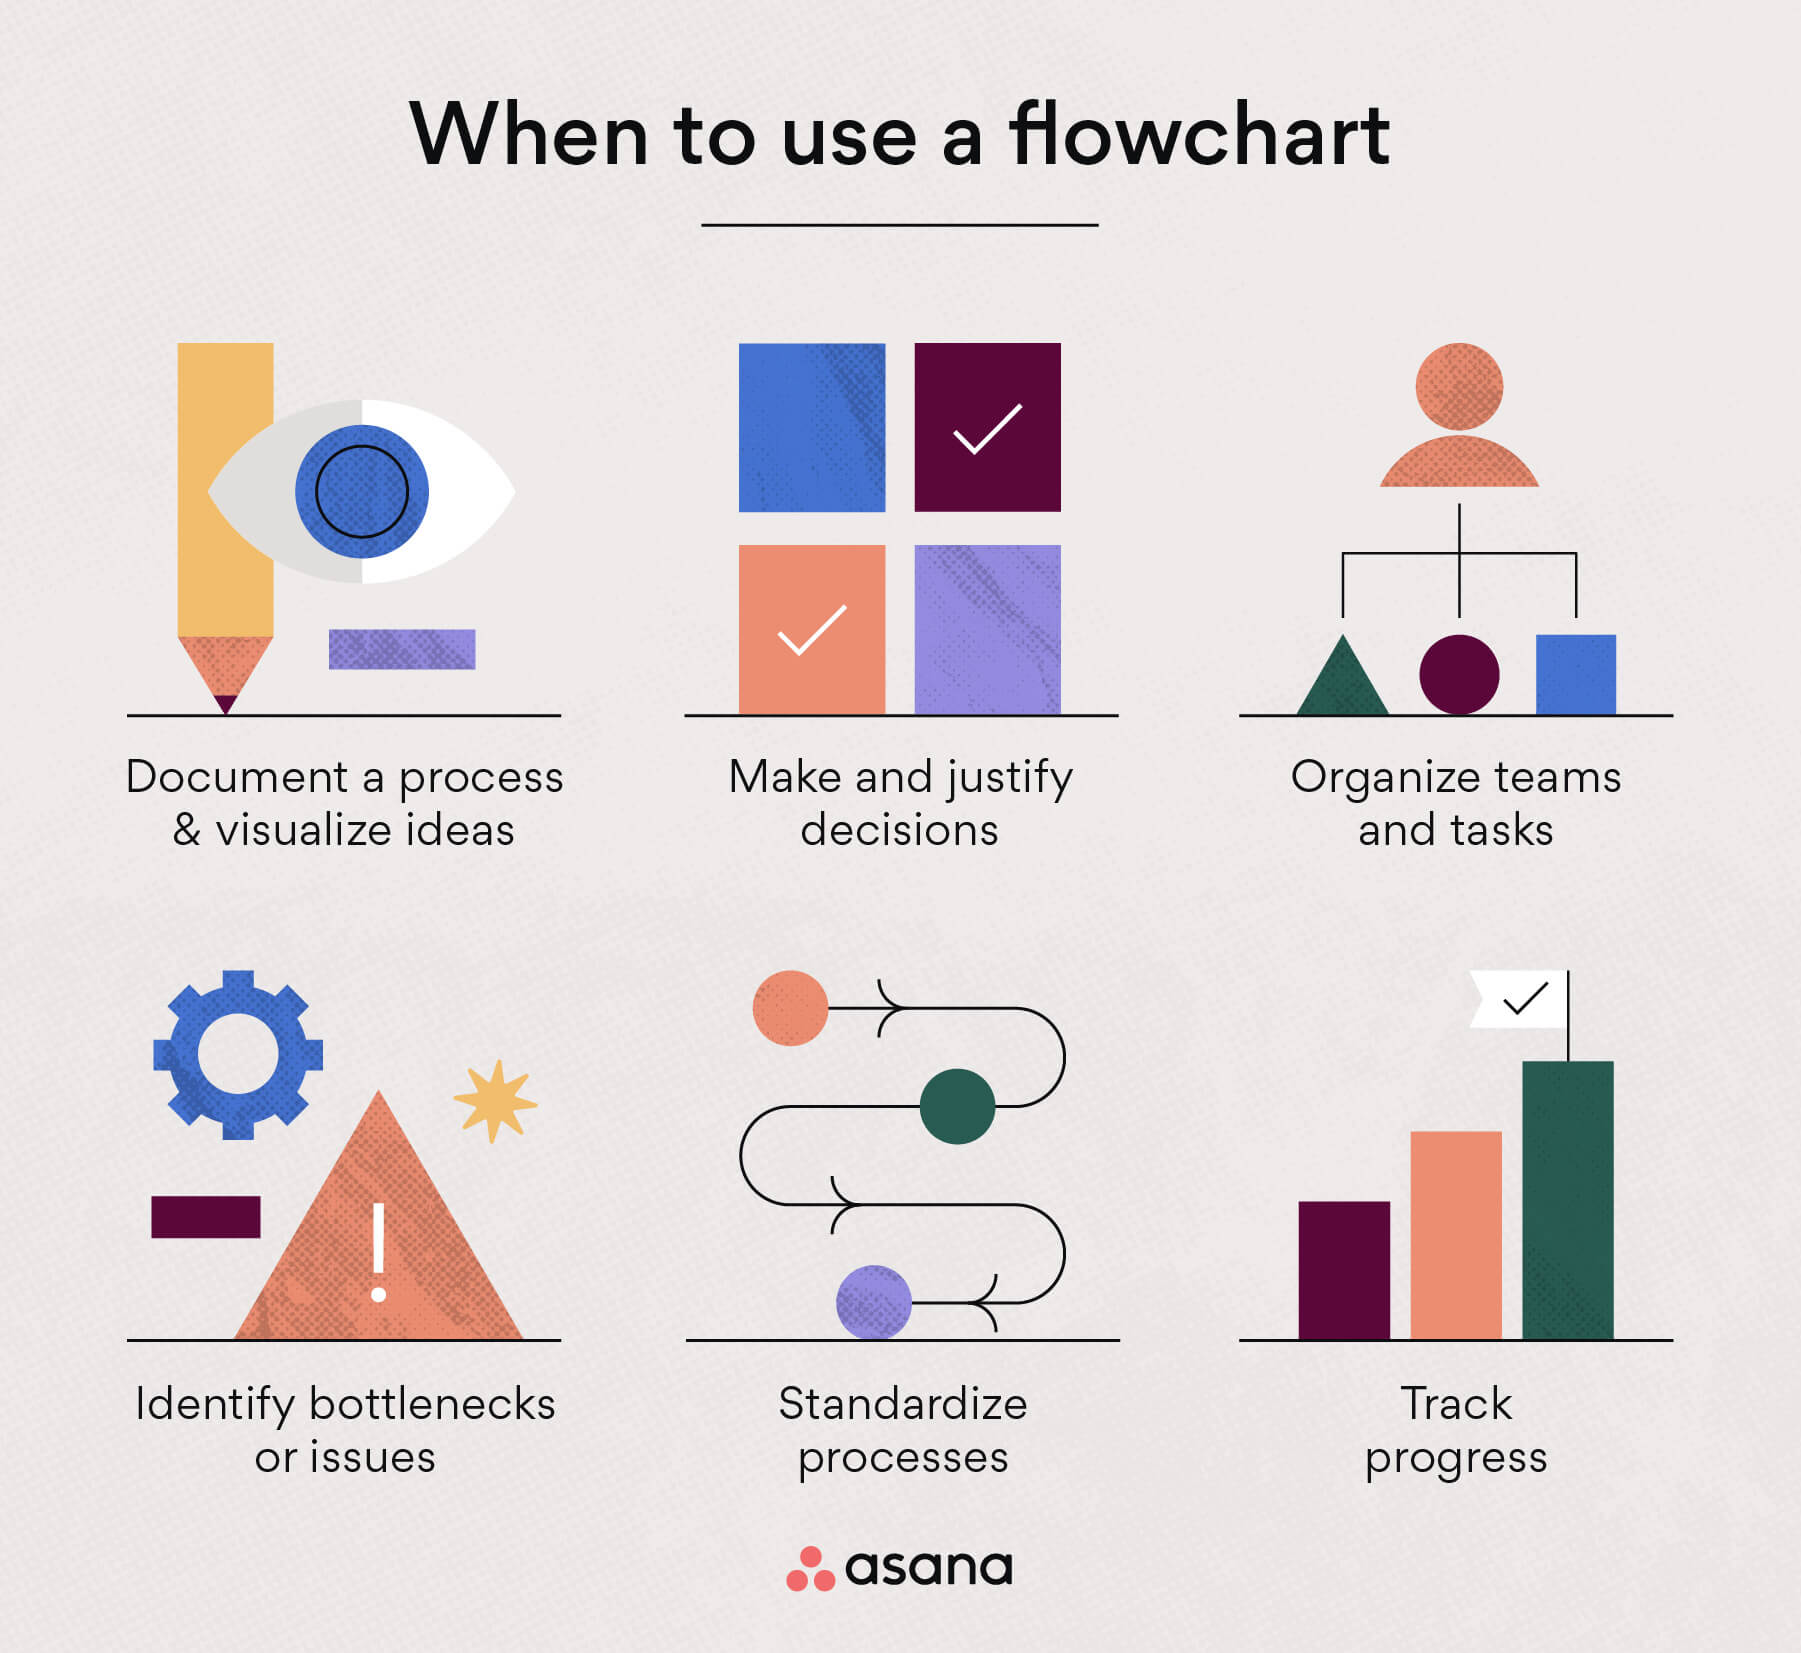 When to use flowcharts